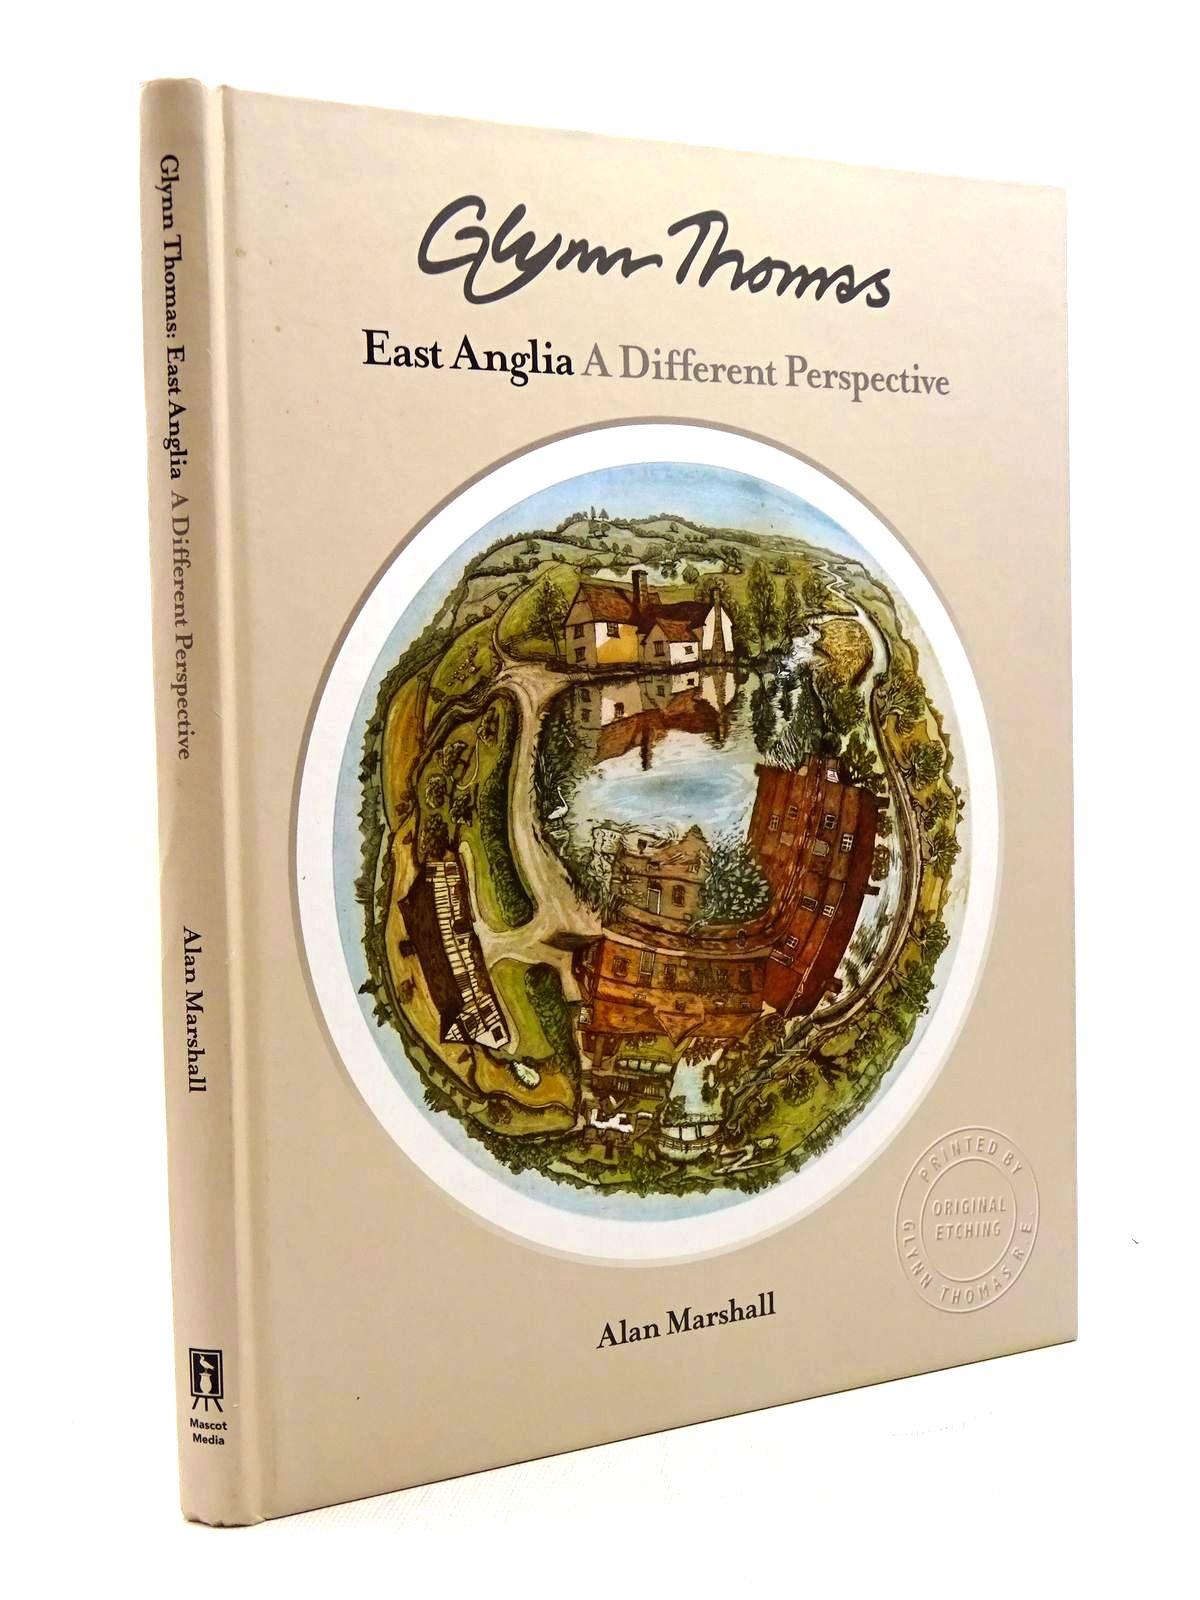 Photo of GLYNN THOMAS: EAST ANGLIA A DIFFERENT PERSPECTIVE written by Marshall, Alan illustrated by Thomas, Glynn published by Mascot Media (STOCK CODE: 1816004)  for sale by Stella & Rose's Books